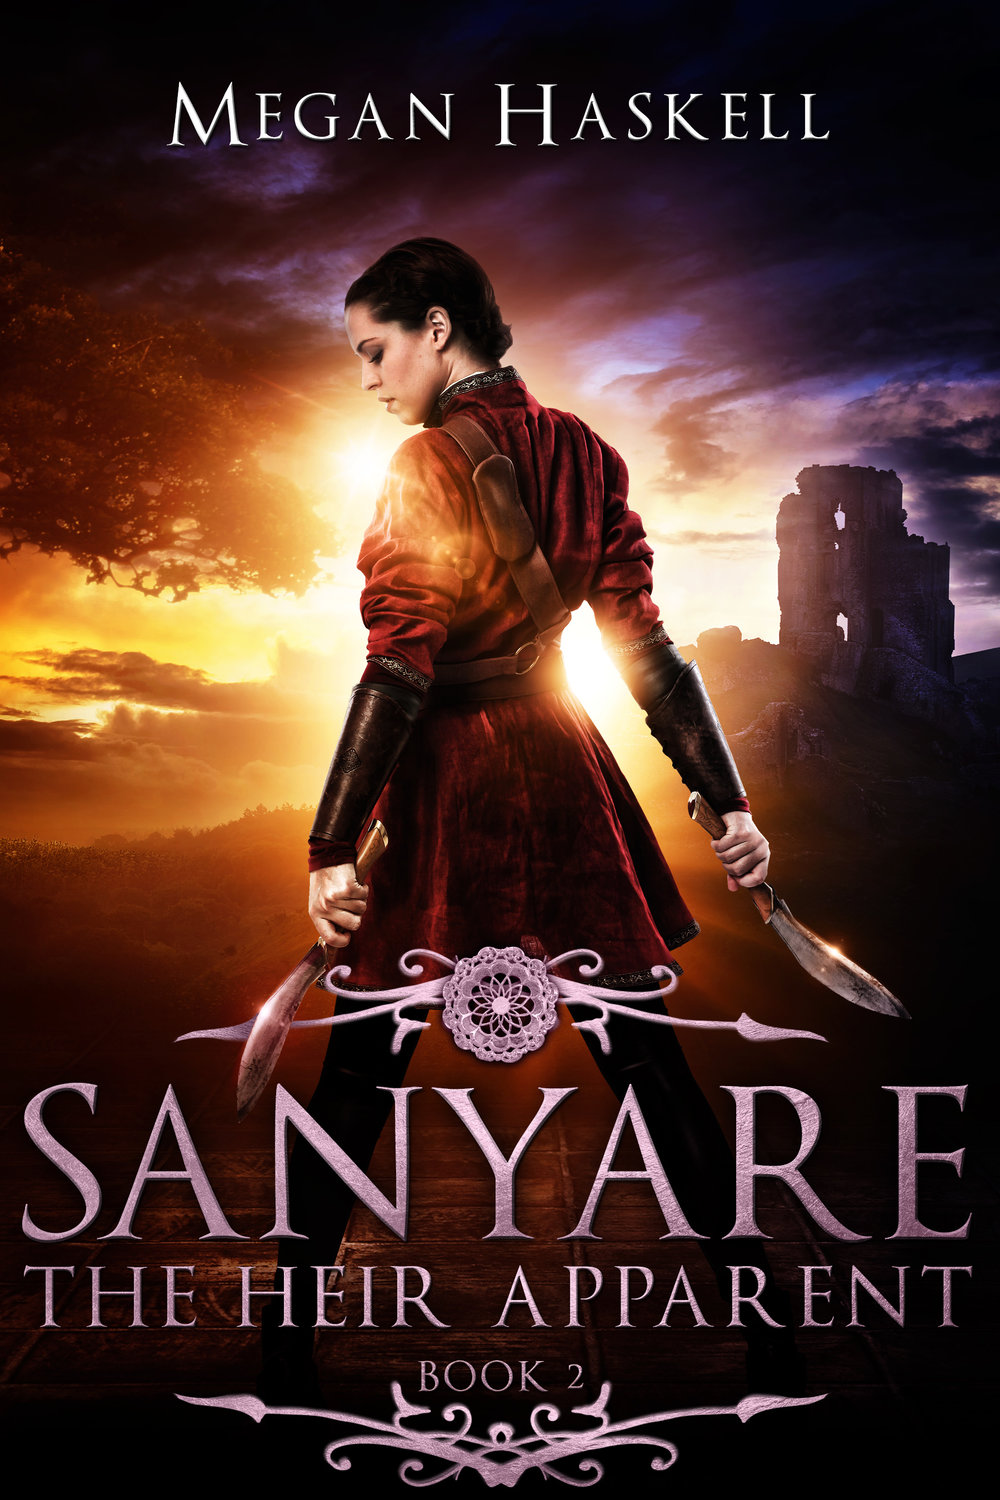 Sanyare: The Heir Apparent, For Sale September 21, 2016!